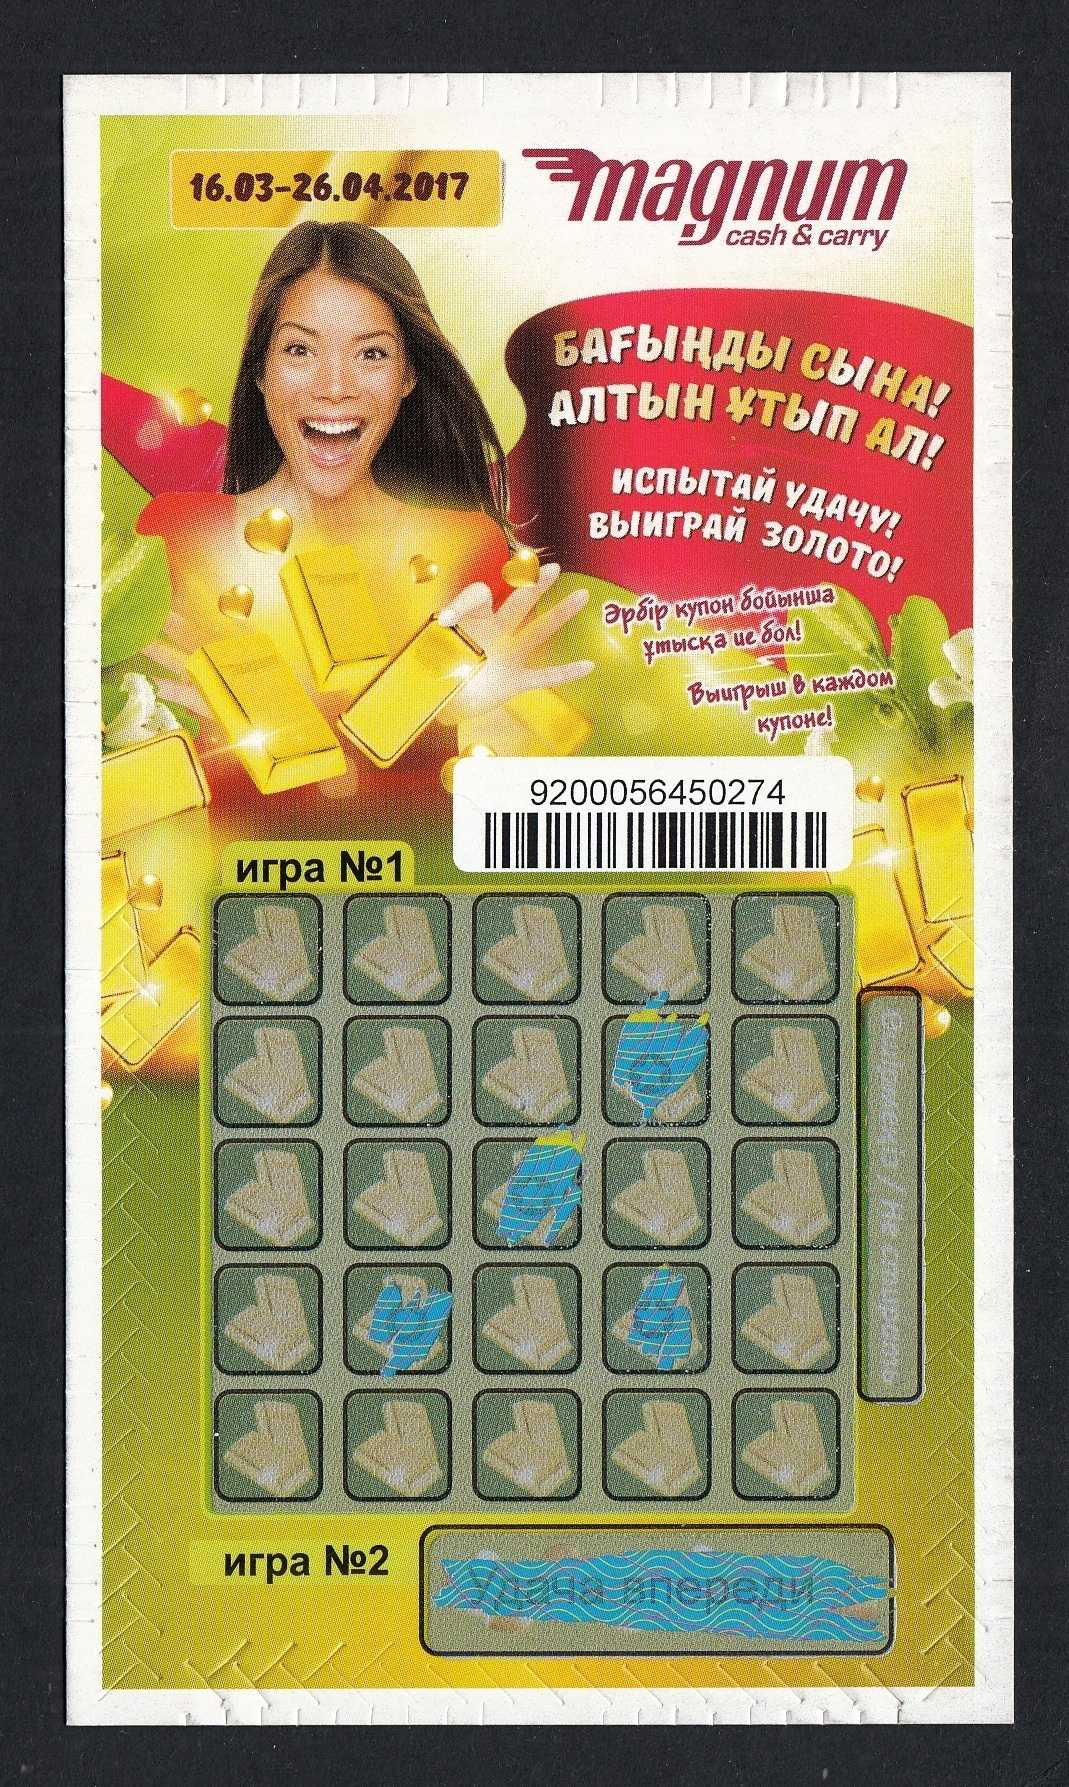 Where to buy a lottery ticket in Russia - how to buy stoloto lottery tickets